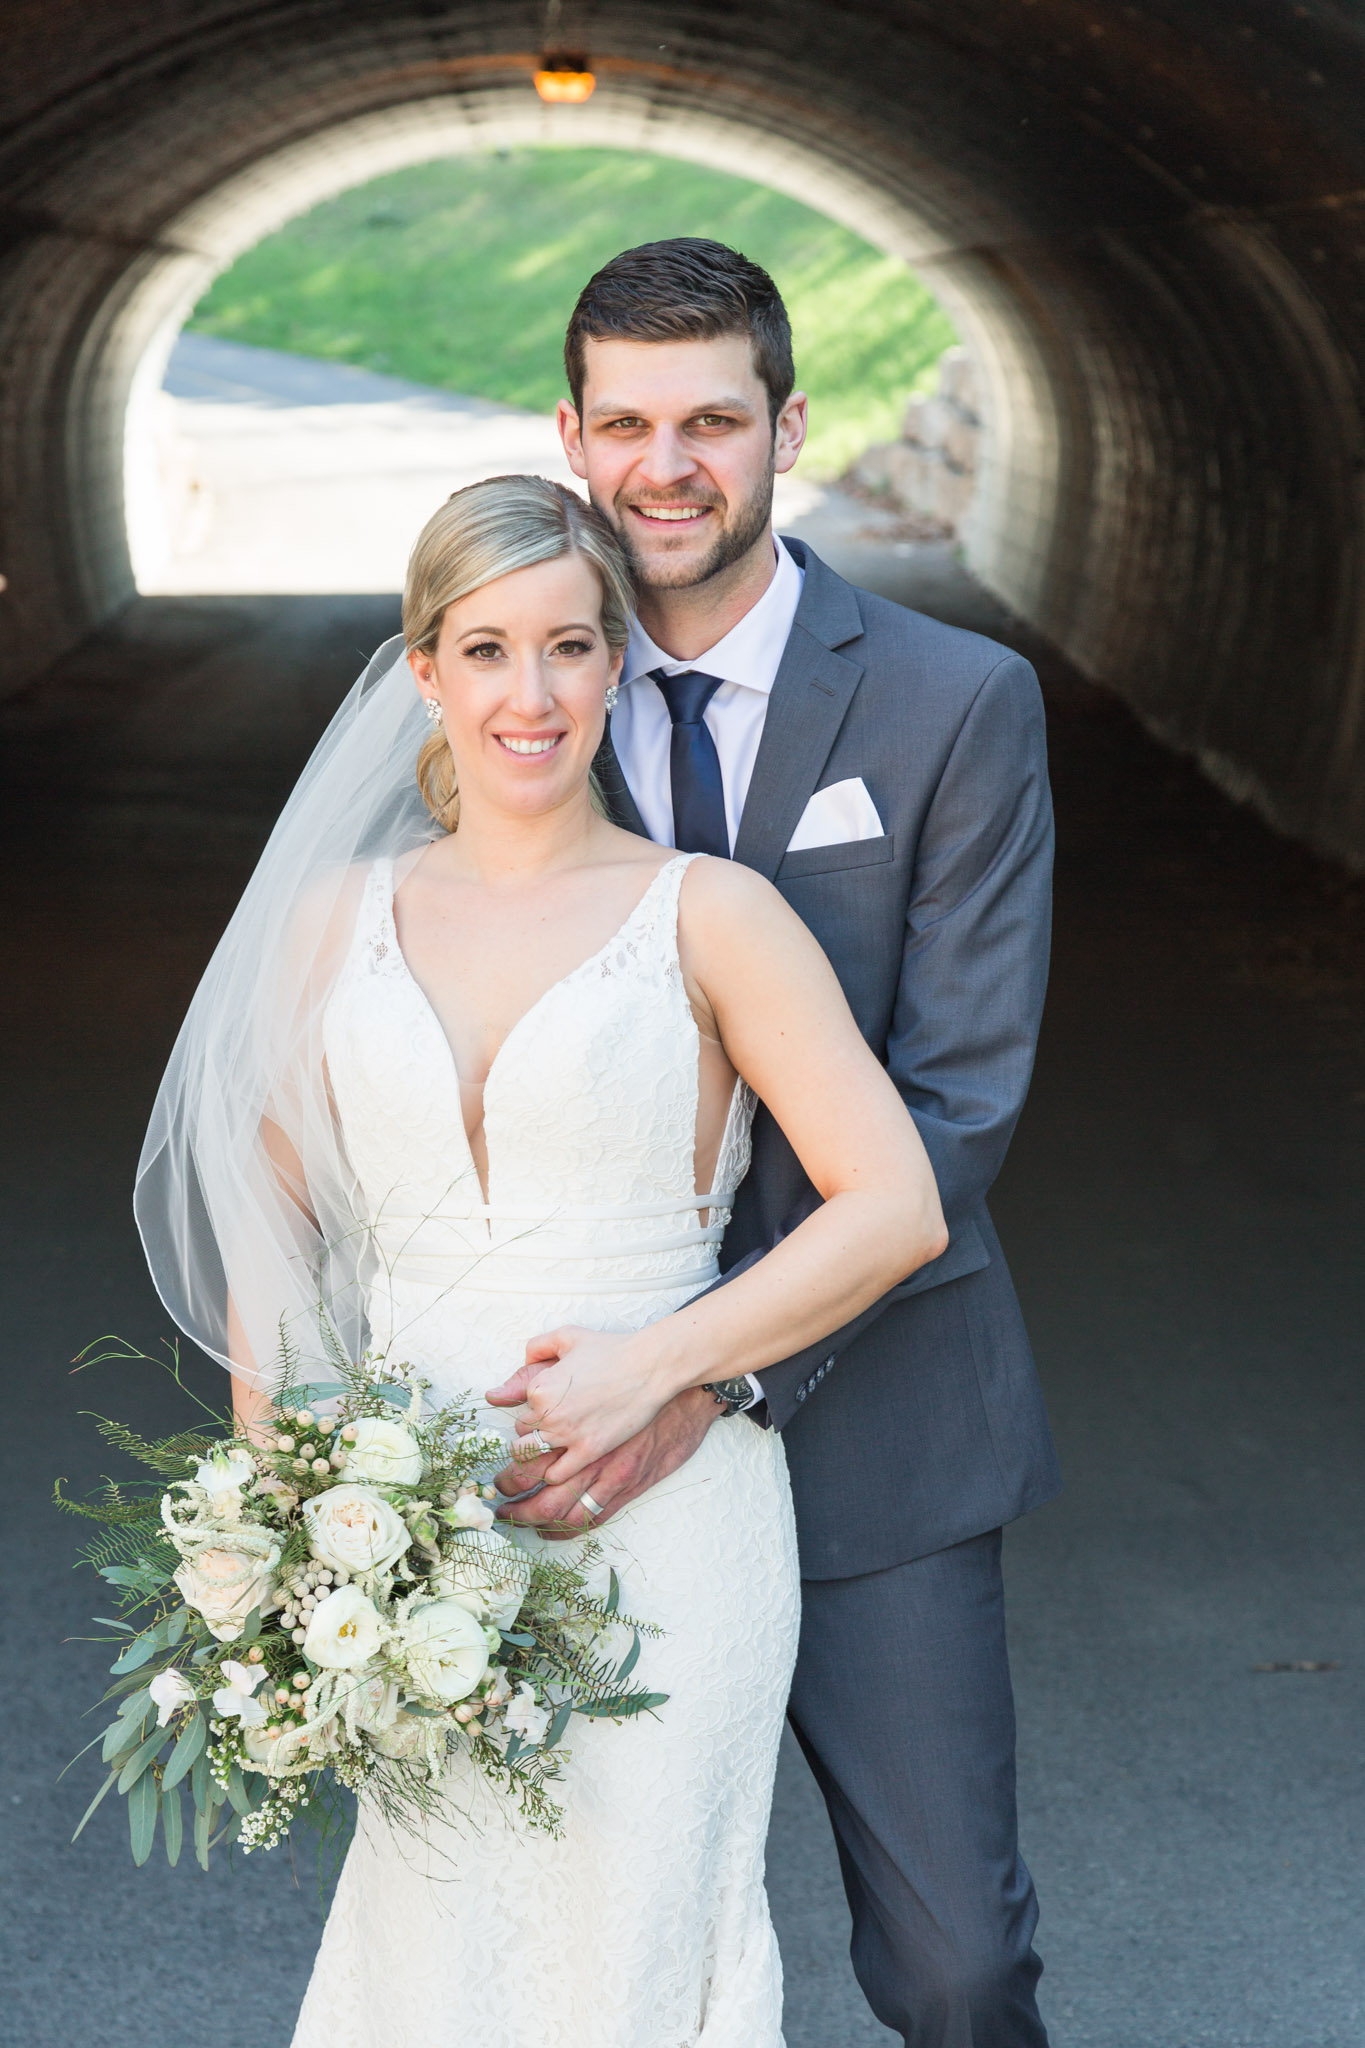 Katie and Brent-5741.jpg